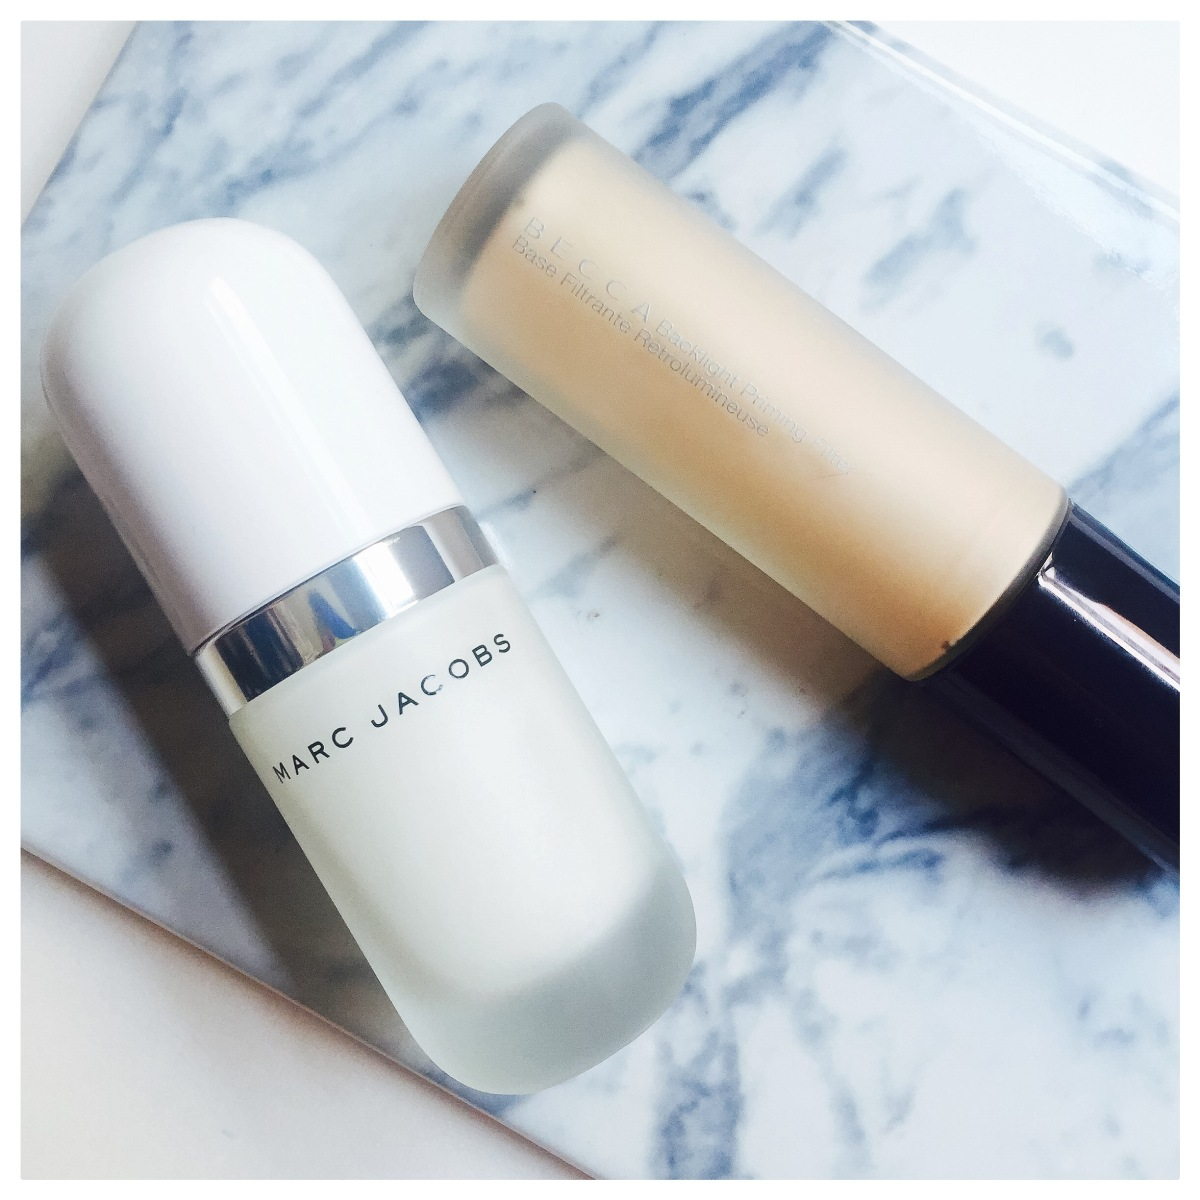 High-end Primers: Becca vs. Marc Jacobs